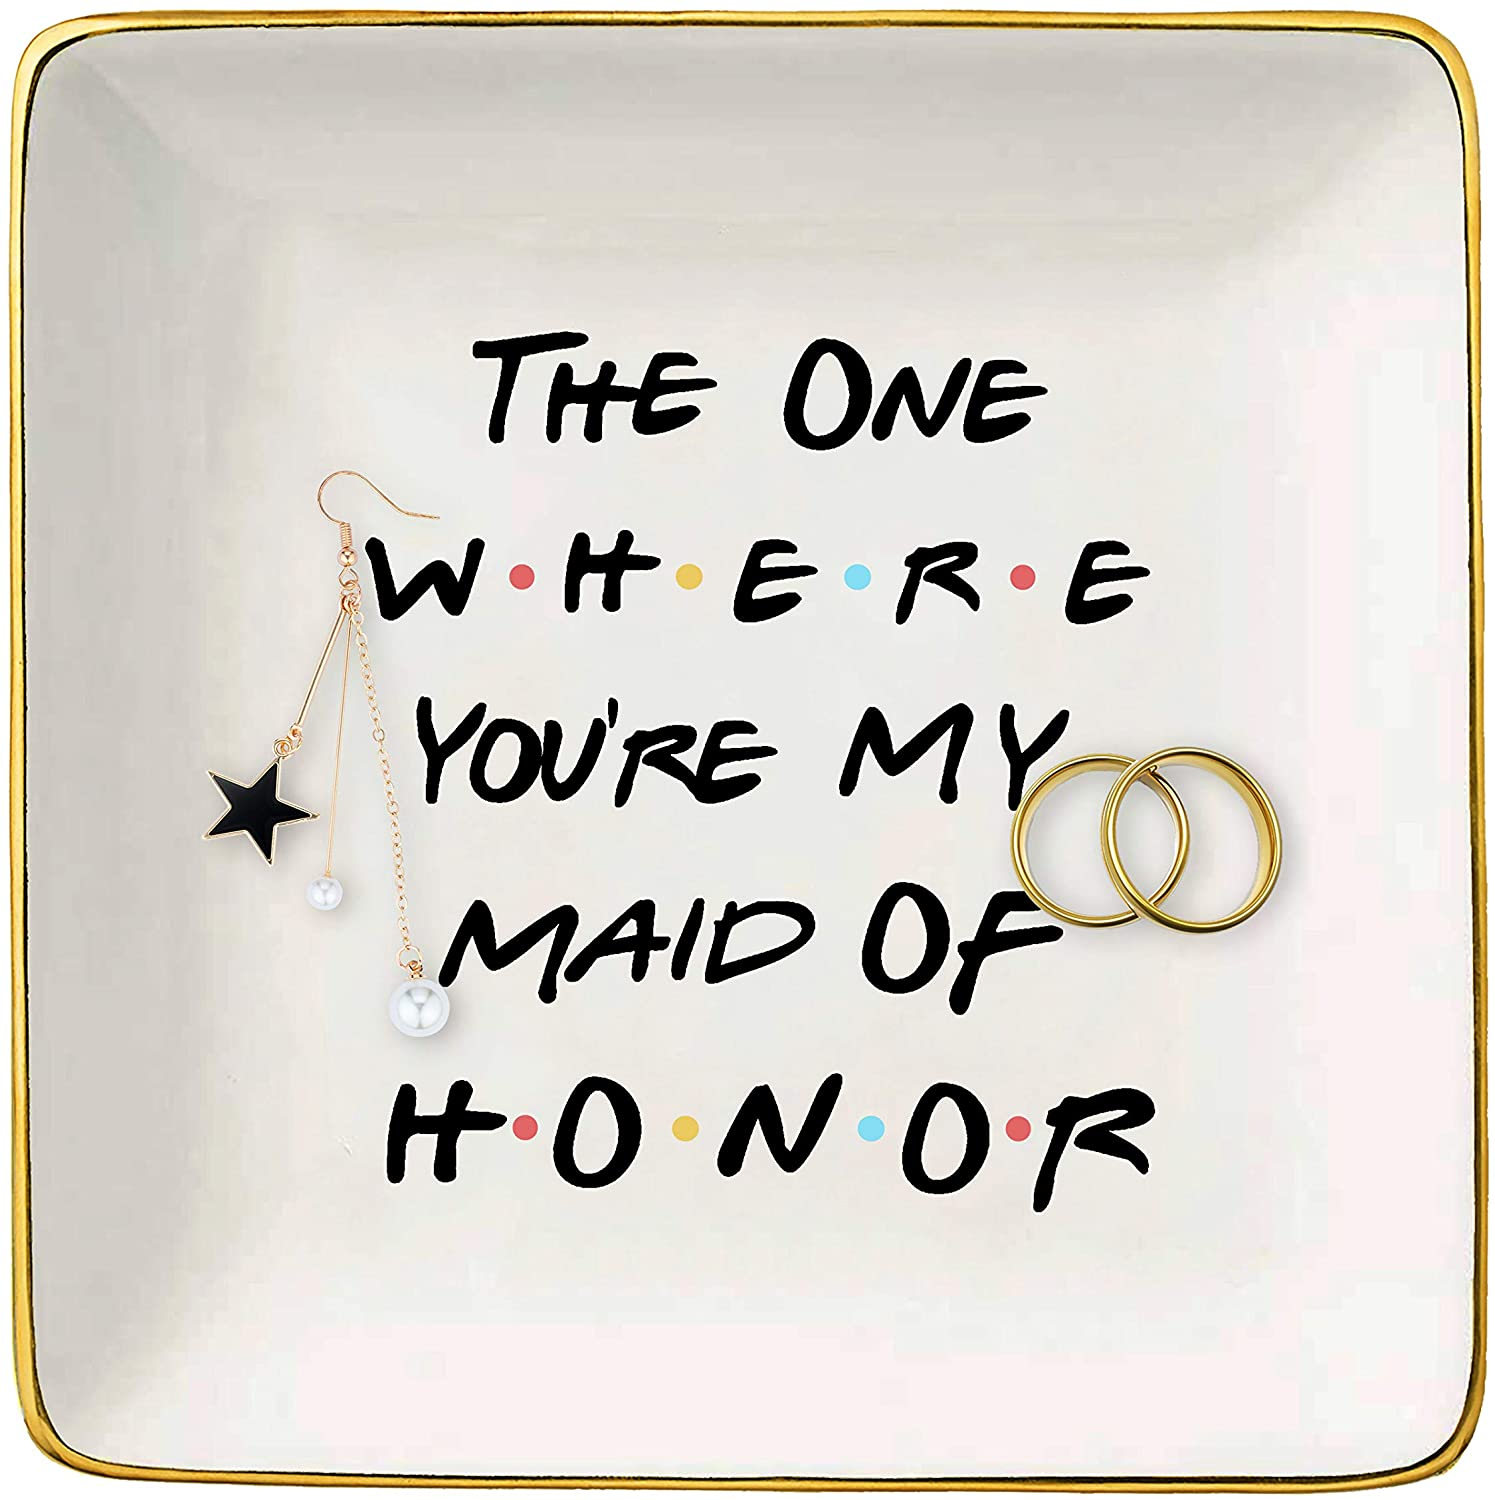 The One Where You're My Maid of Honor - Funny Bridemaid Gift- Bachelorette Party Gifts - Unique Christmas Proposal Gifts for Besties Friends Woman - Ceramic Ring Dish Decorative Trinket Tray Plate